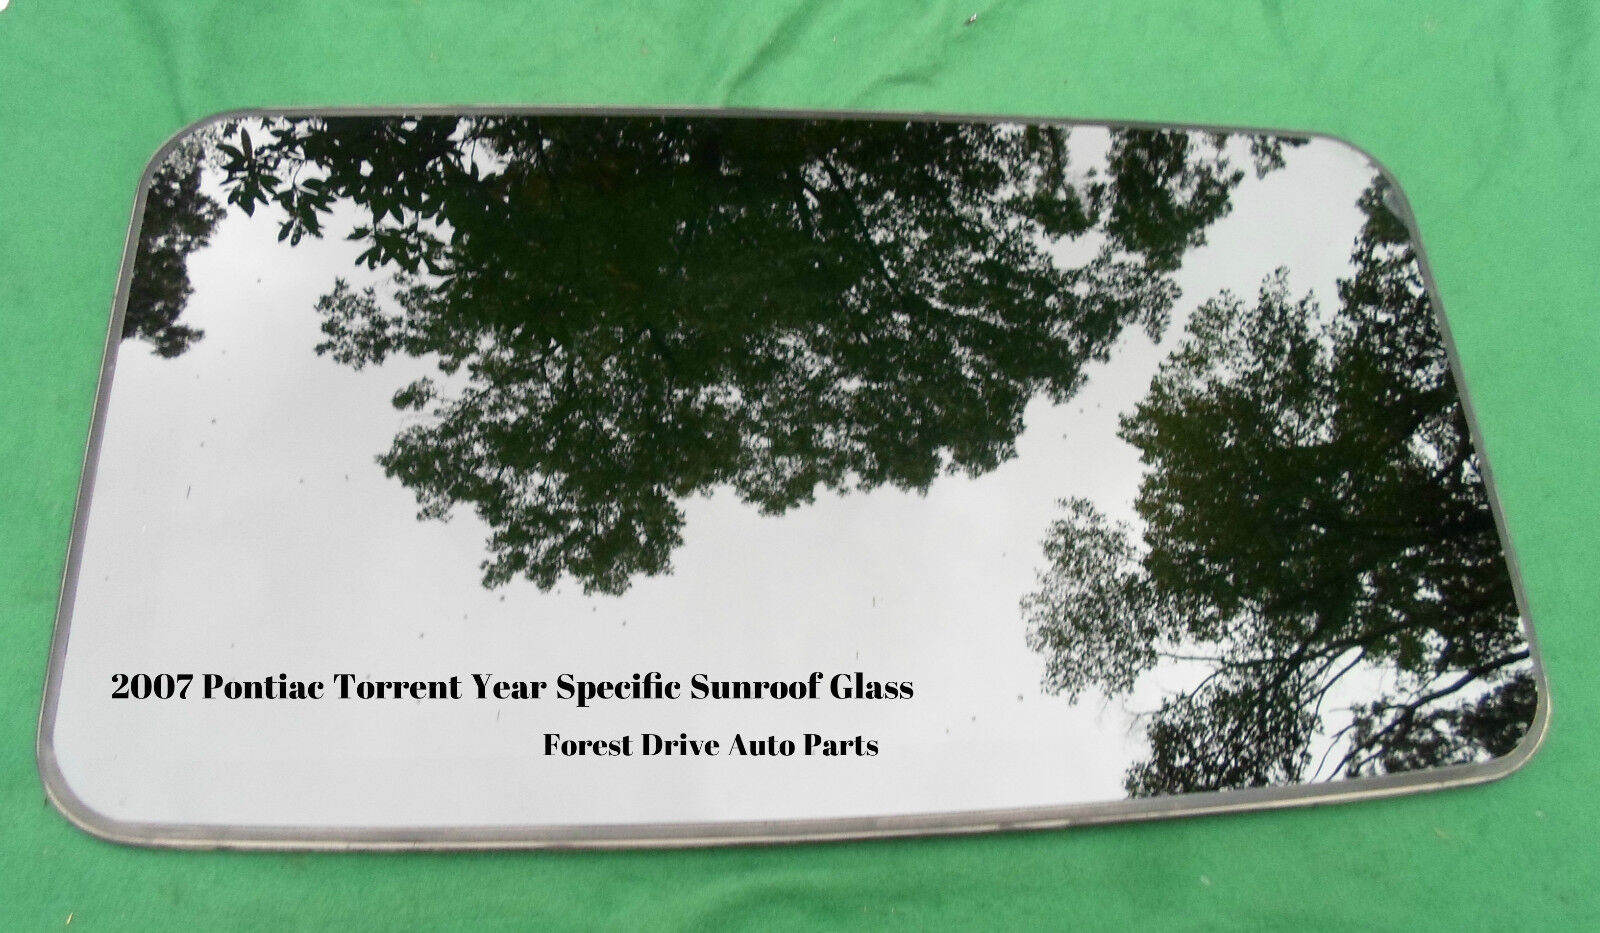 Used Pontiac Torrent Exterior Parts For Sale Factory 2007 Year Specific Sunroof Glass Oem Free Shipping